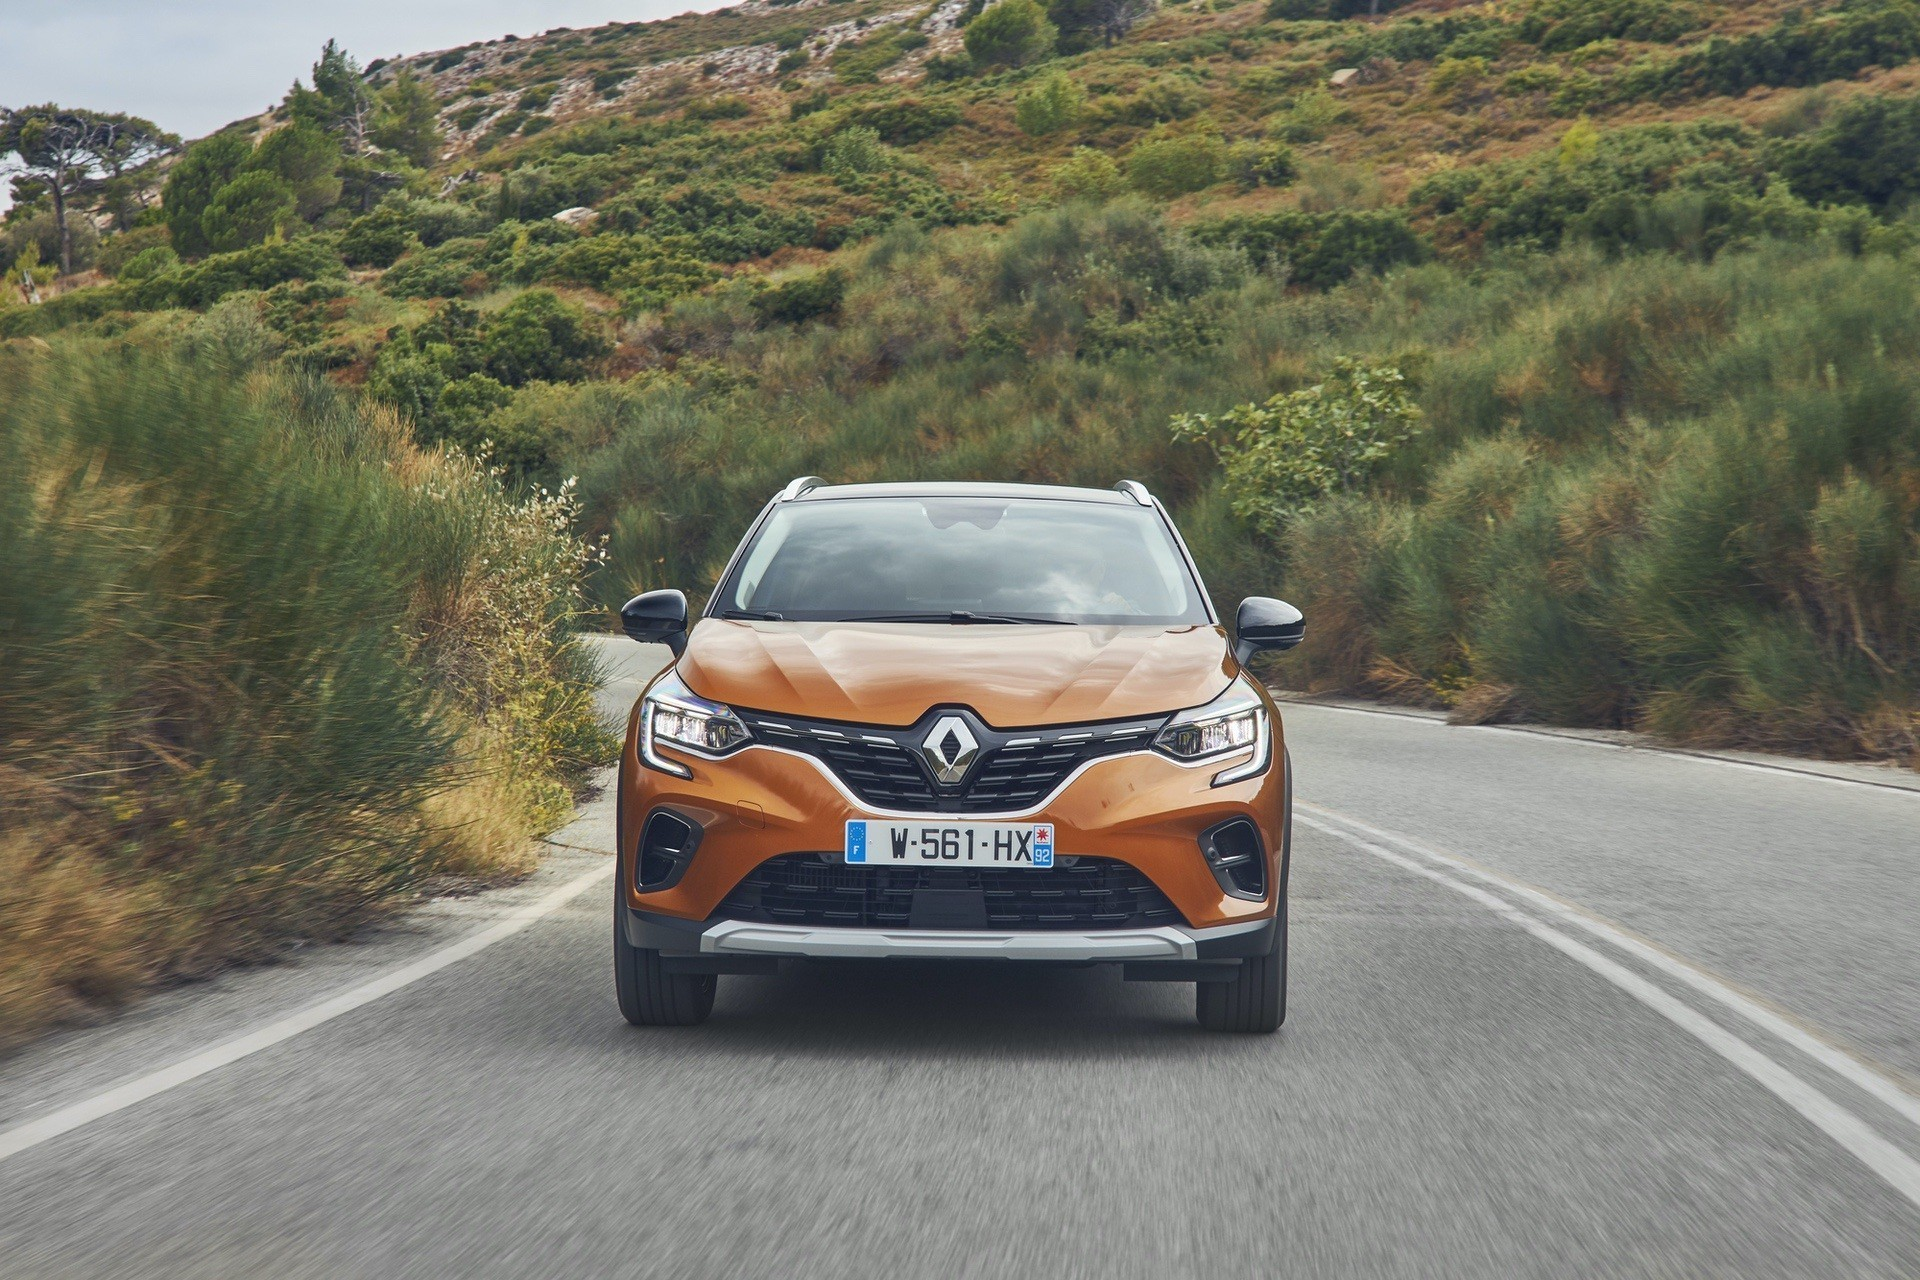 First_Drive_Renault_Captur_0069